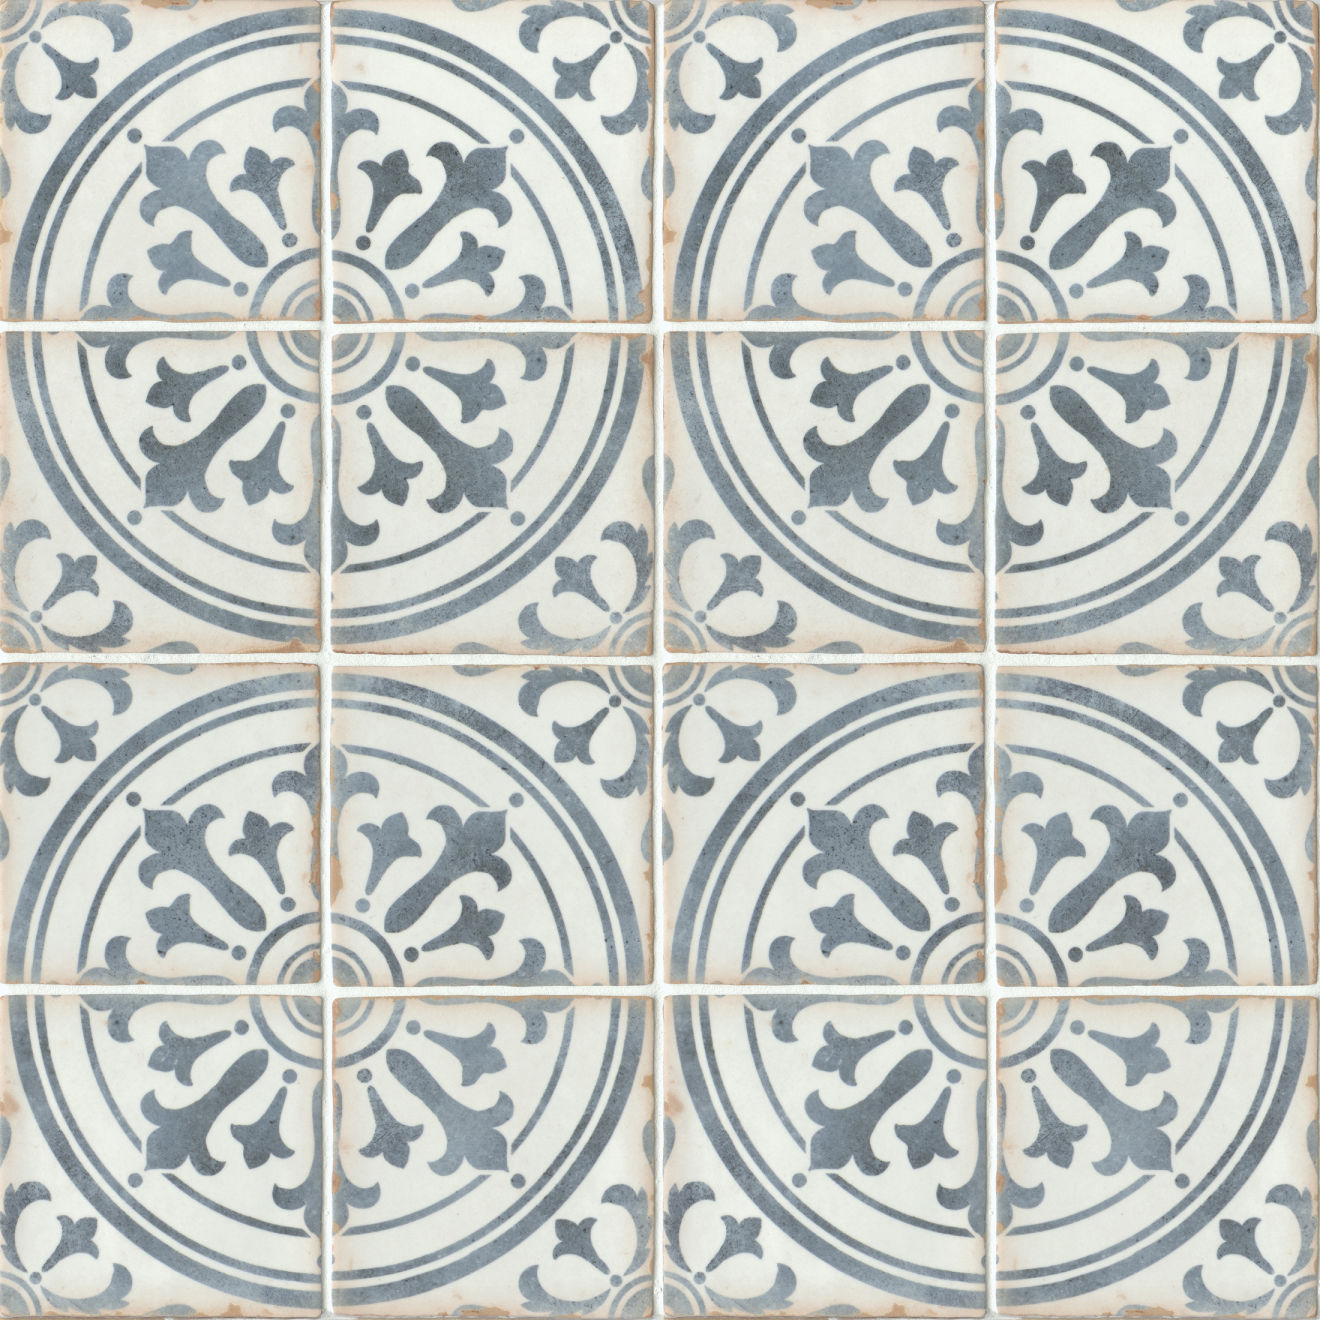 "Casablanca 5"" x 5"" Matte Ceramic Floor and Wall Tile in Ziane"